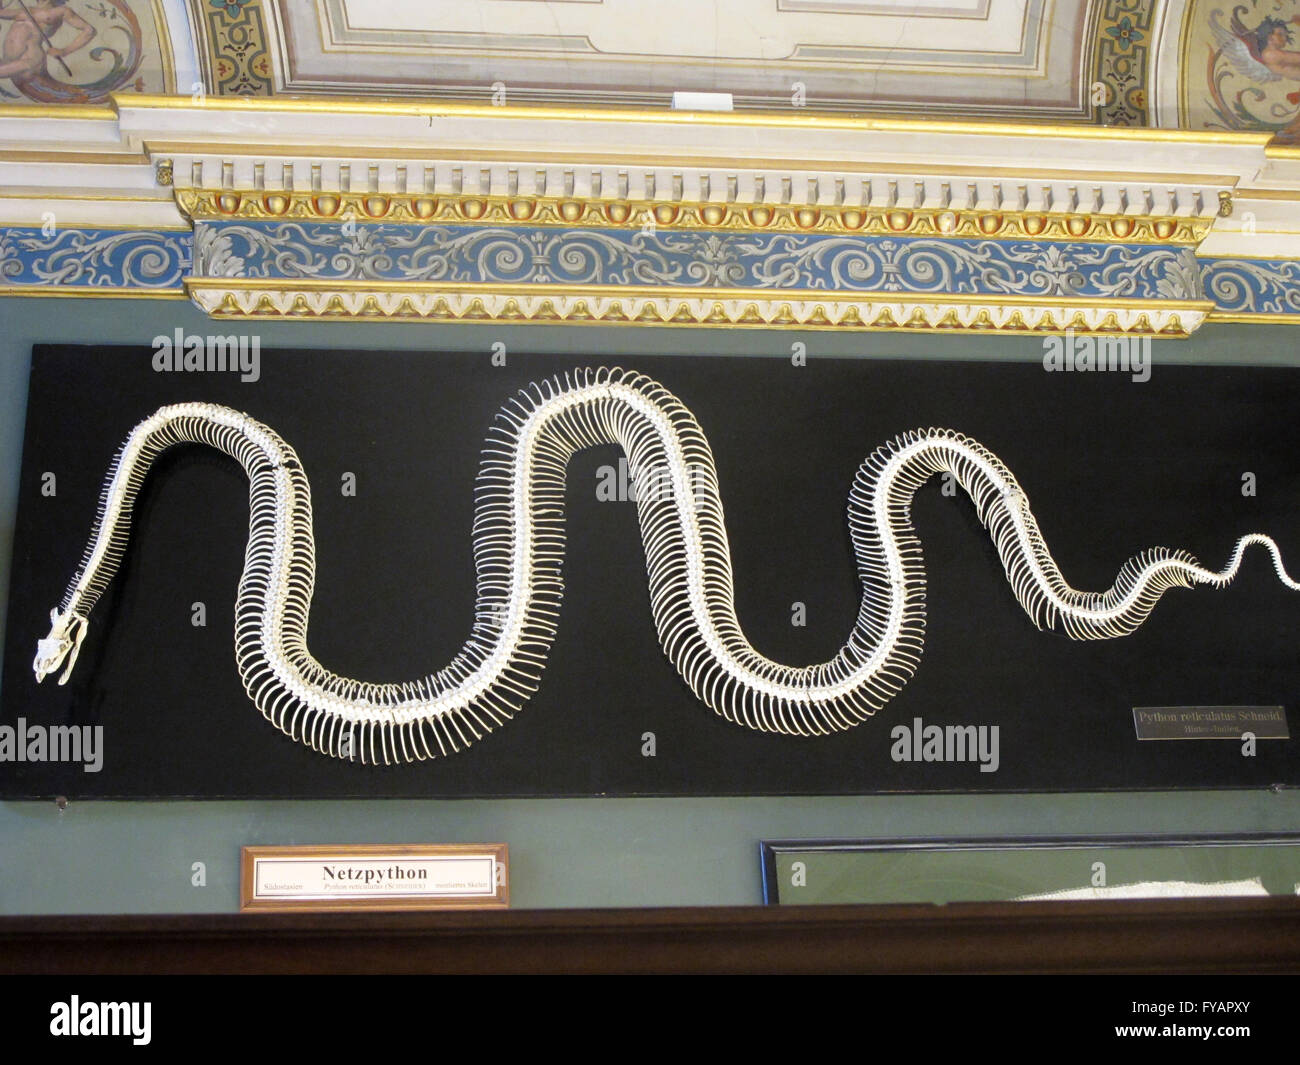 Tempat Jual Peython Large Pw Update 2018 Loop Ramadhan Lazypod Jepsis For Smartphone Python Snake Stock Photos Images Skeleton On Display At Museum Of Natural History